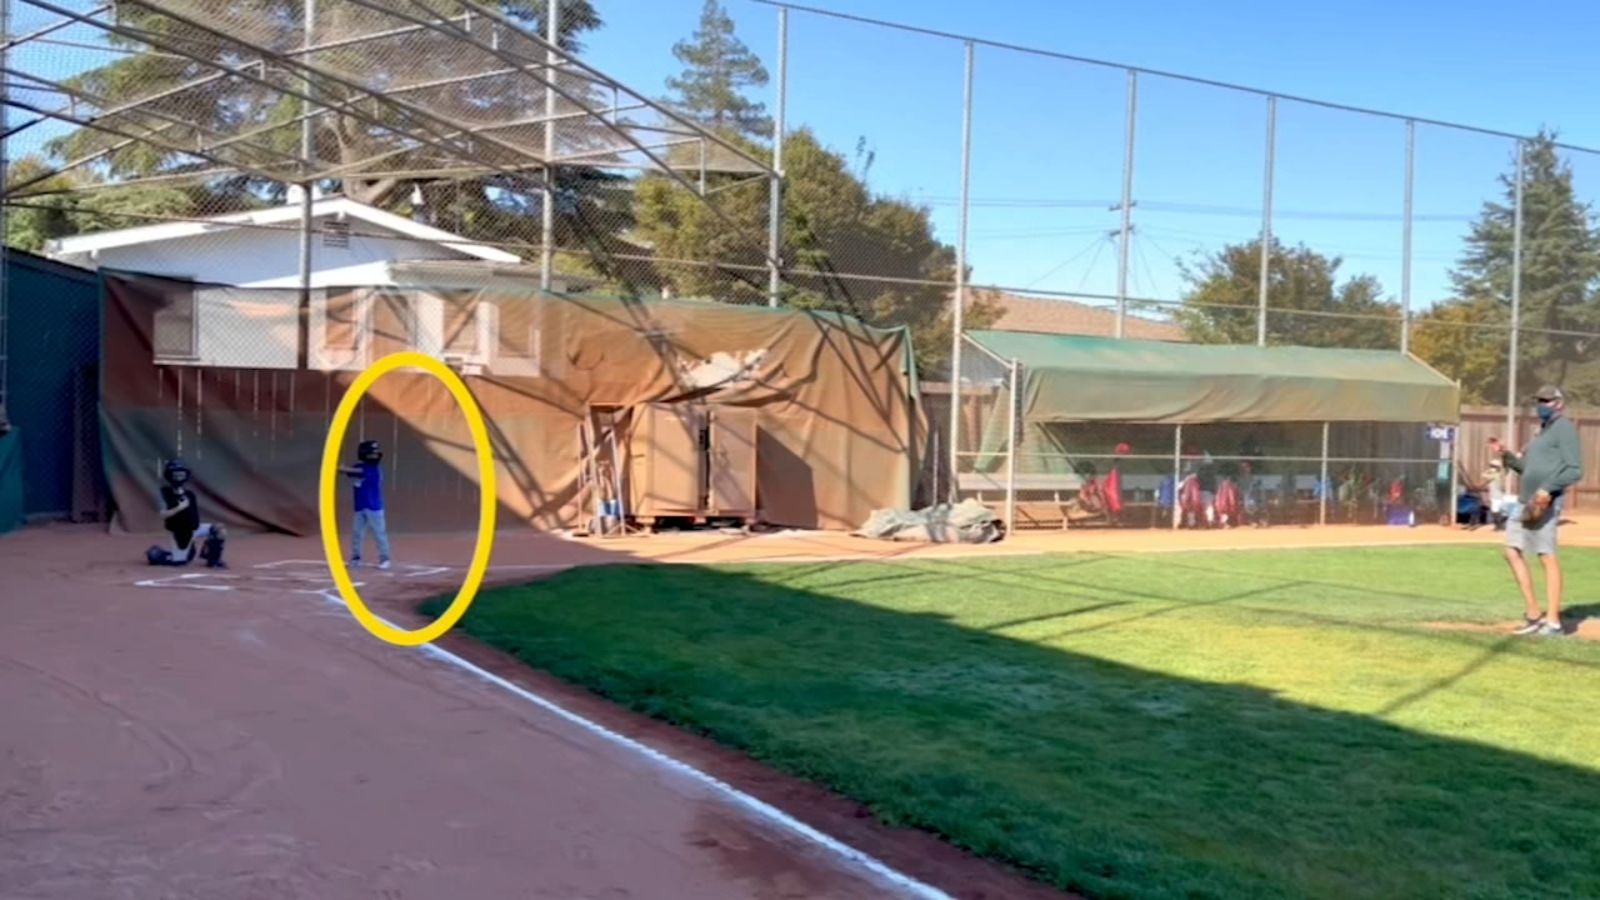 abc7news.com: Hurtful chant directed at 7-year-old Little Leaguer leads to teachable moment